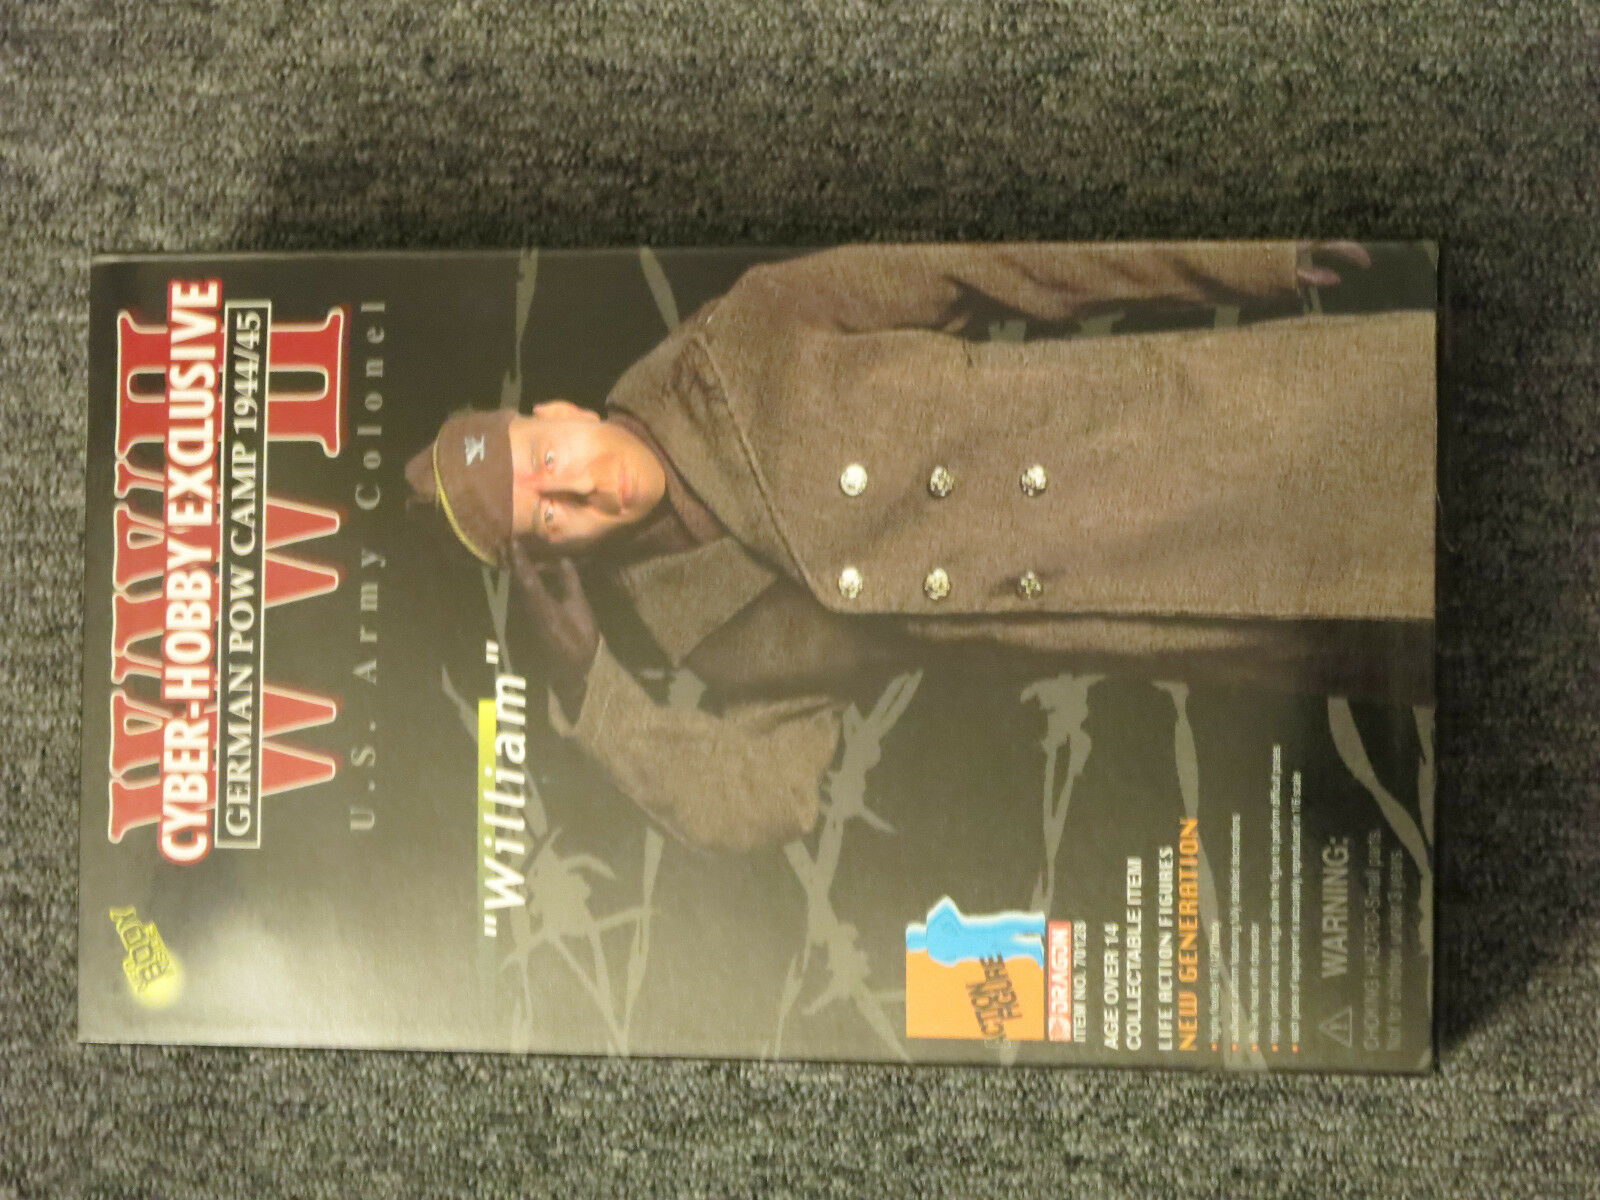 DRAGON CyberHobby Exclusive WILLIAM Geruomo POW Camp 194445  70128 16th cifra